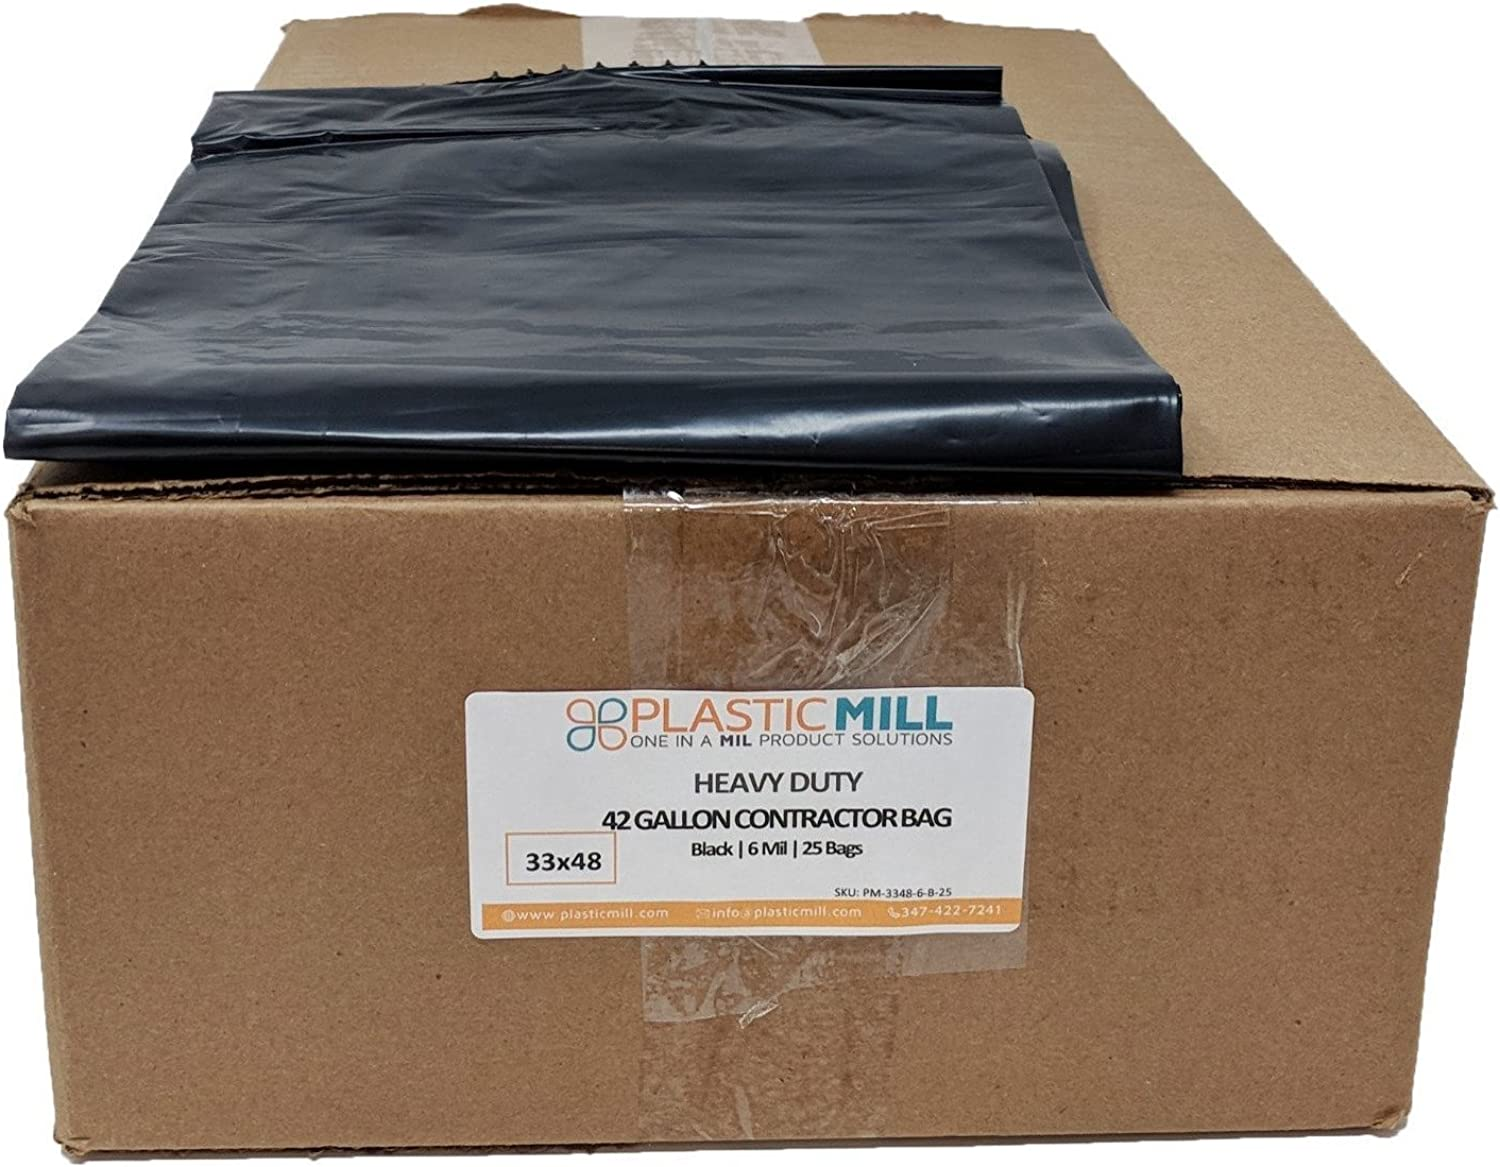 PlasticMill 42 Gallon, Black, 6 MIL, 33x48, 25 Bags Case, Garbage Bags Trash Can Liners.